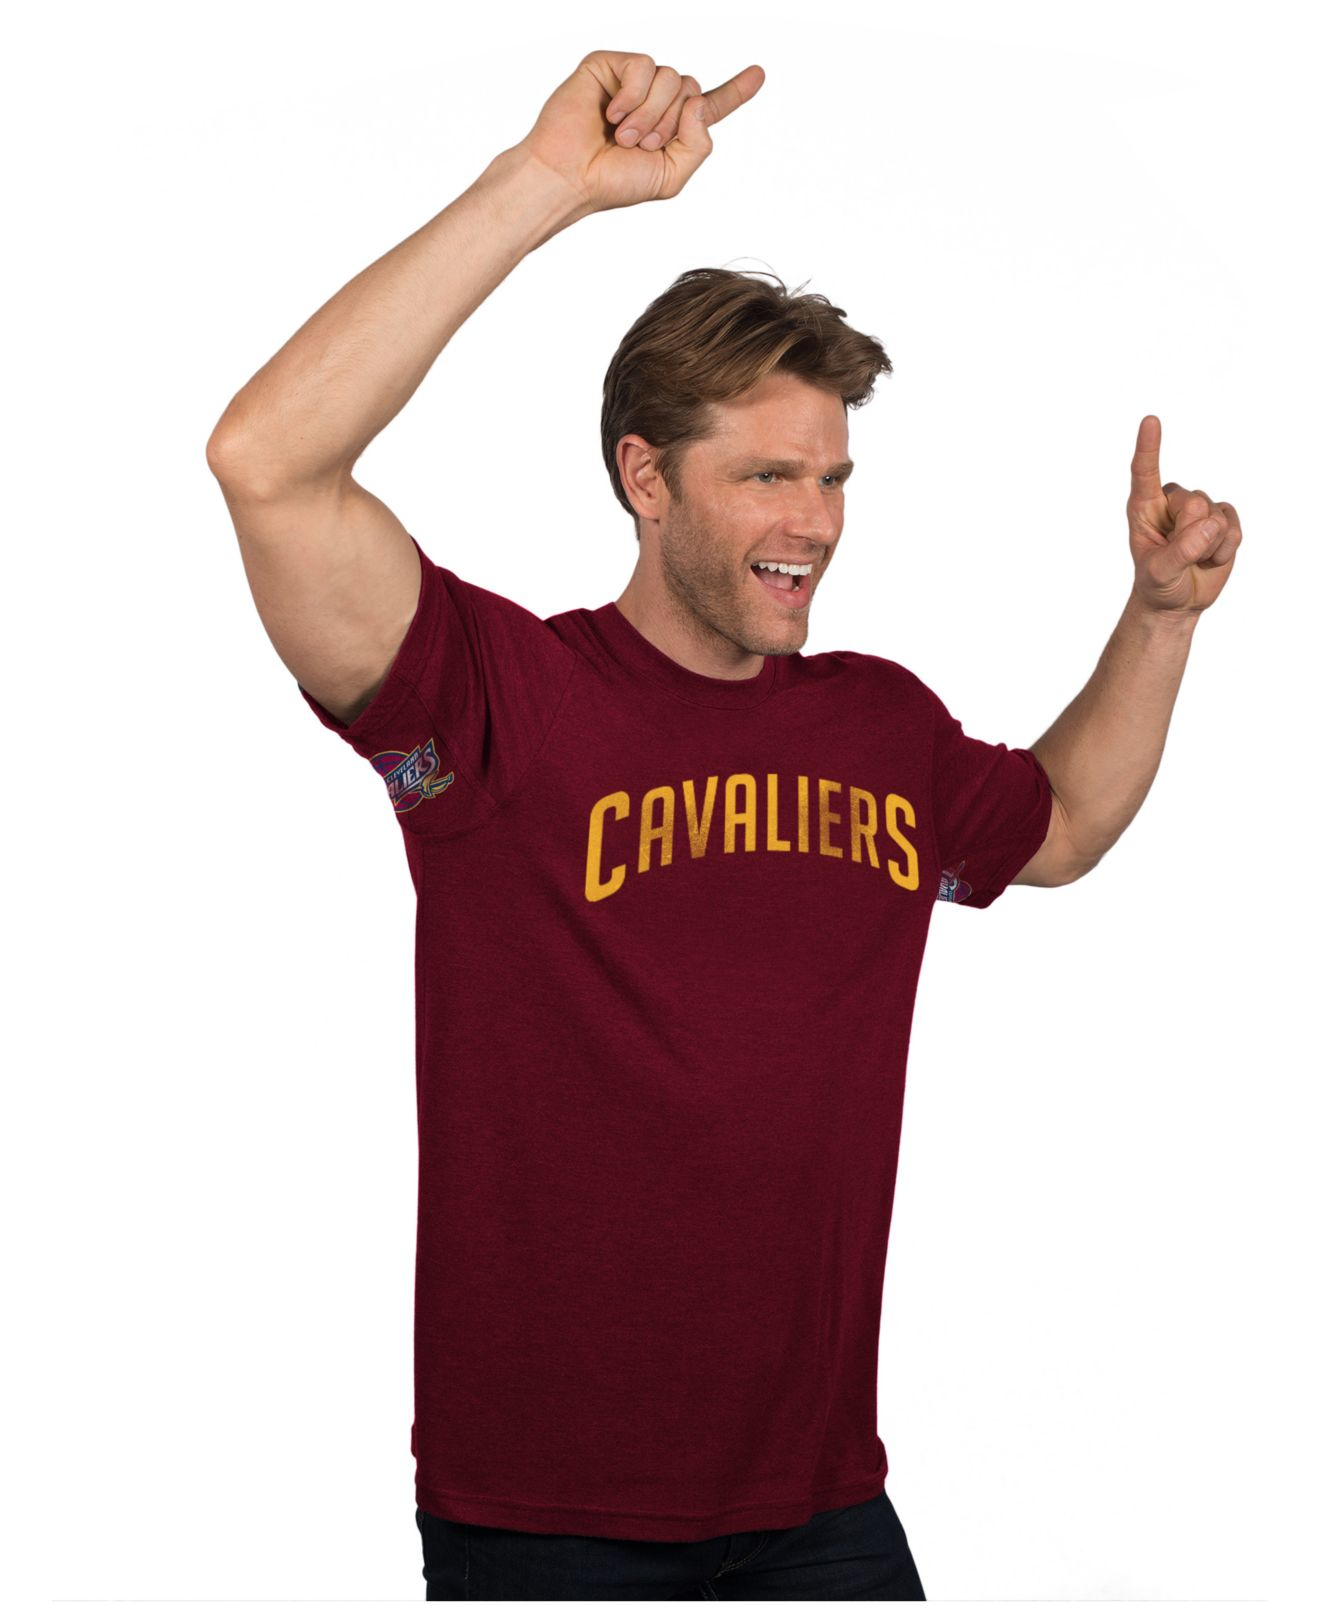 Cavs black t shirt jersey - Cavs Black T Shirt Jersey Gallery